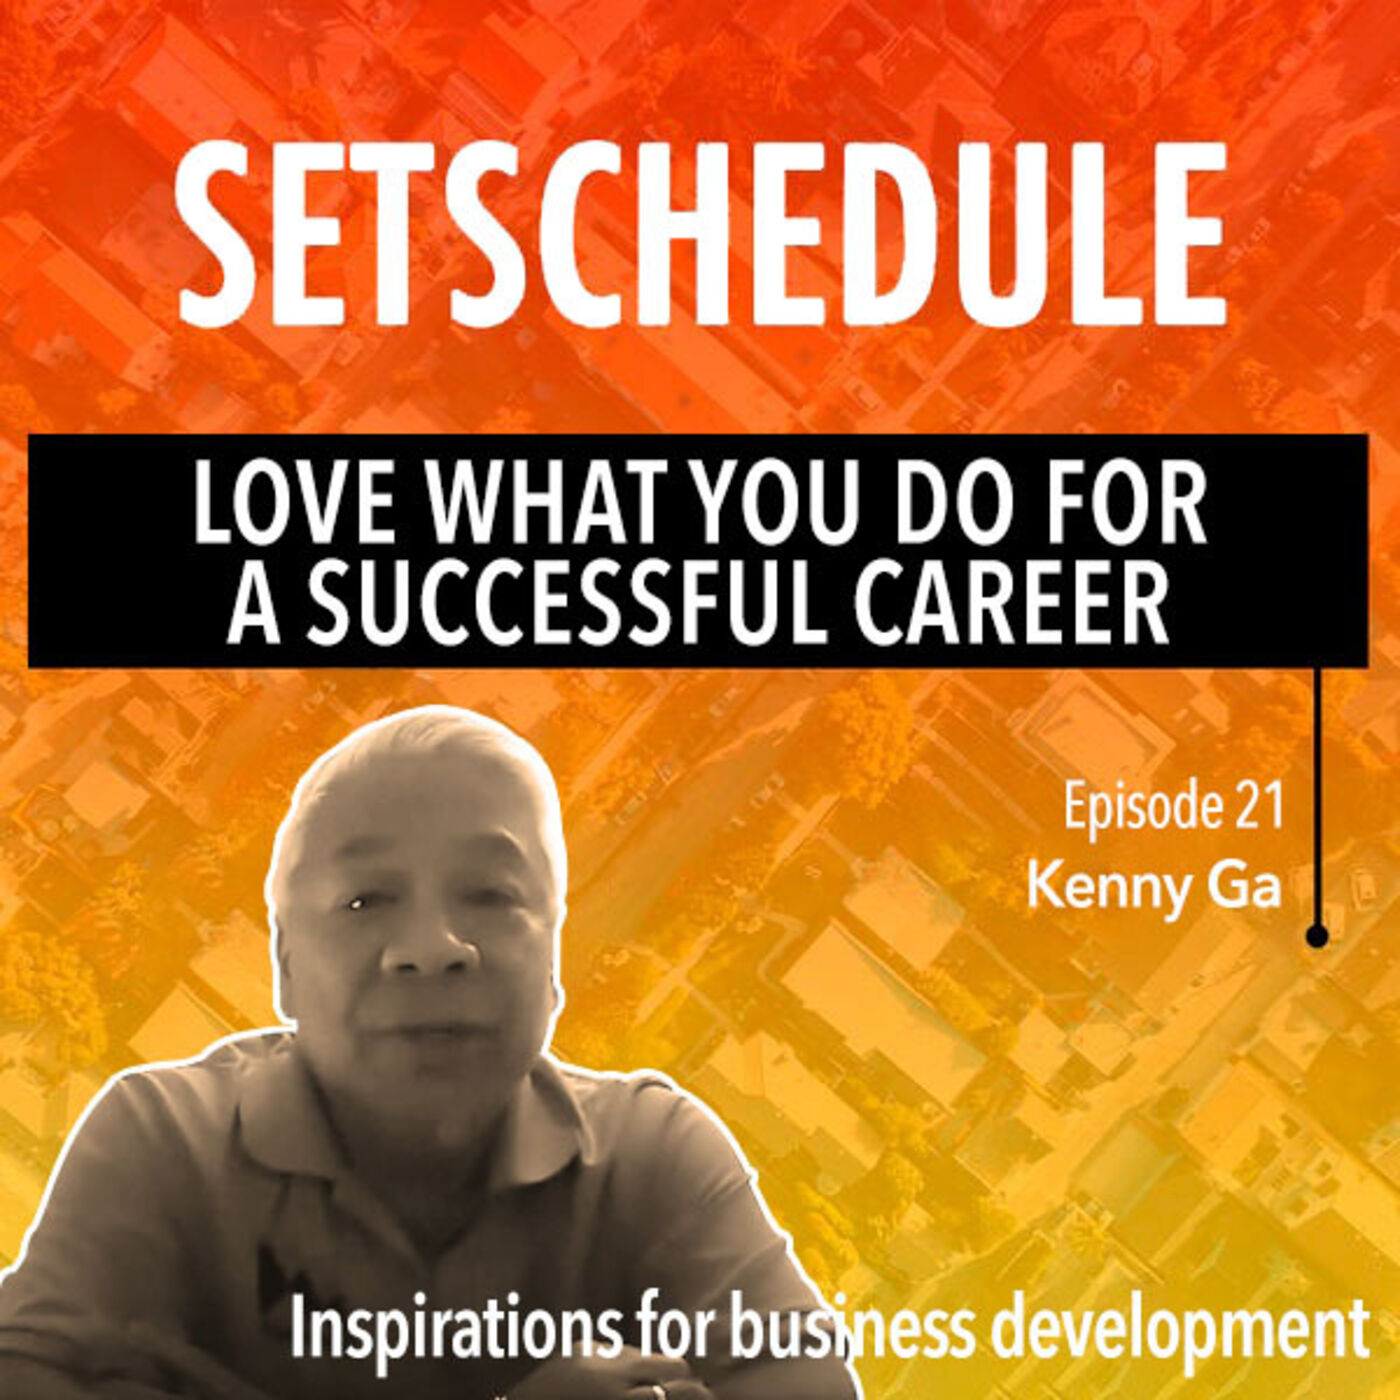 Love What You Do For A Successful Career - Kenny Ga